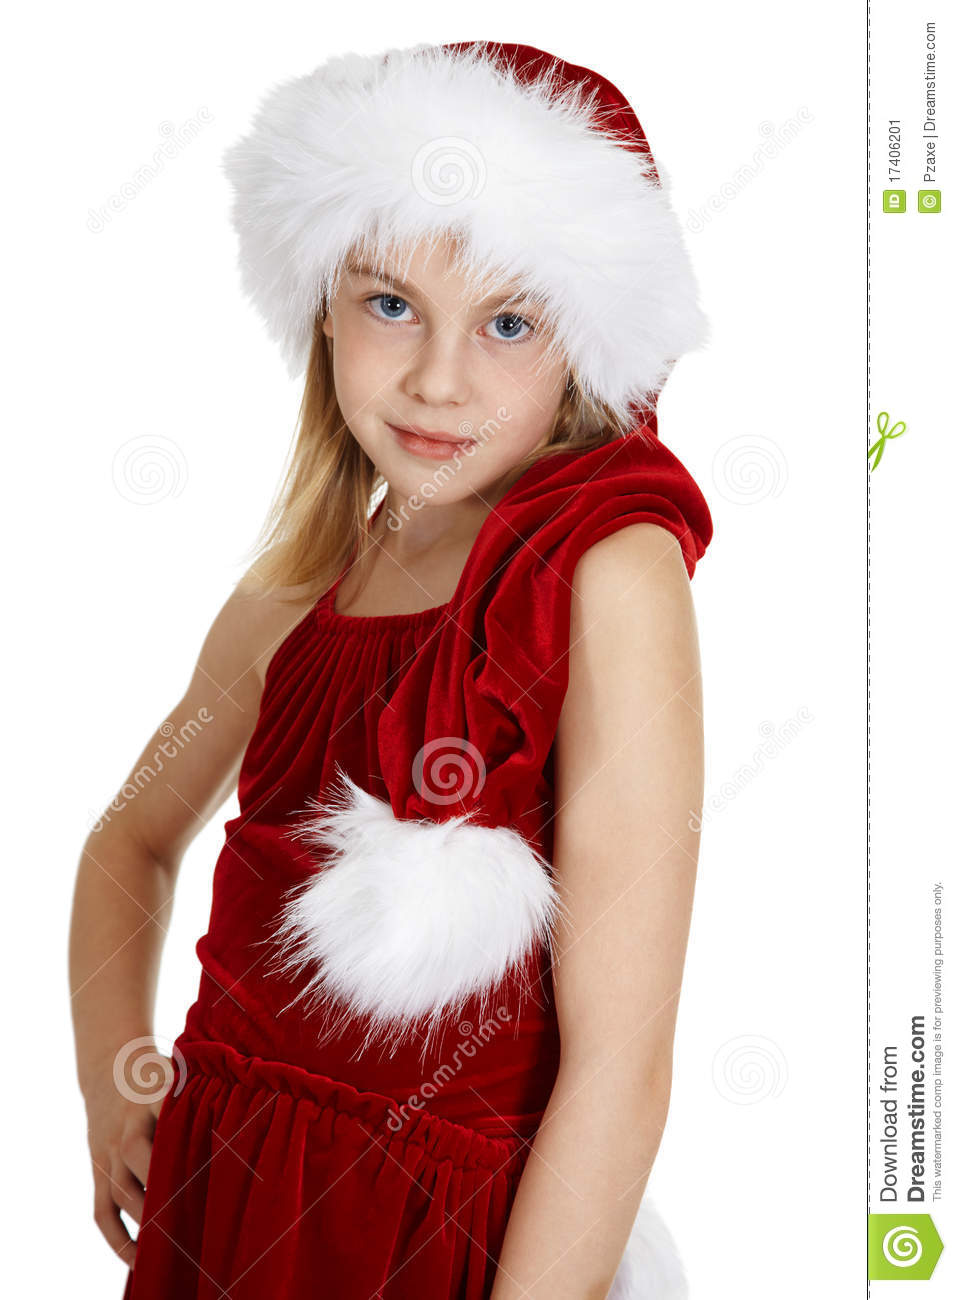 Girl Teen Teenager Transition Age 13 14 15 Years Brunette: Portrait Of Teen Girl In Christmas Costume Stock Image